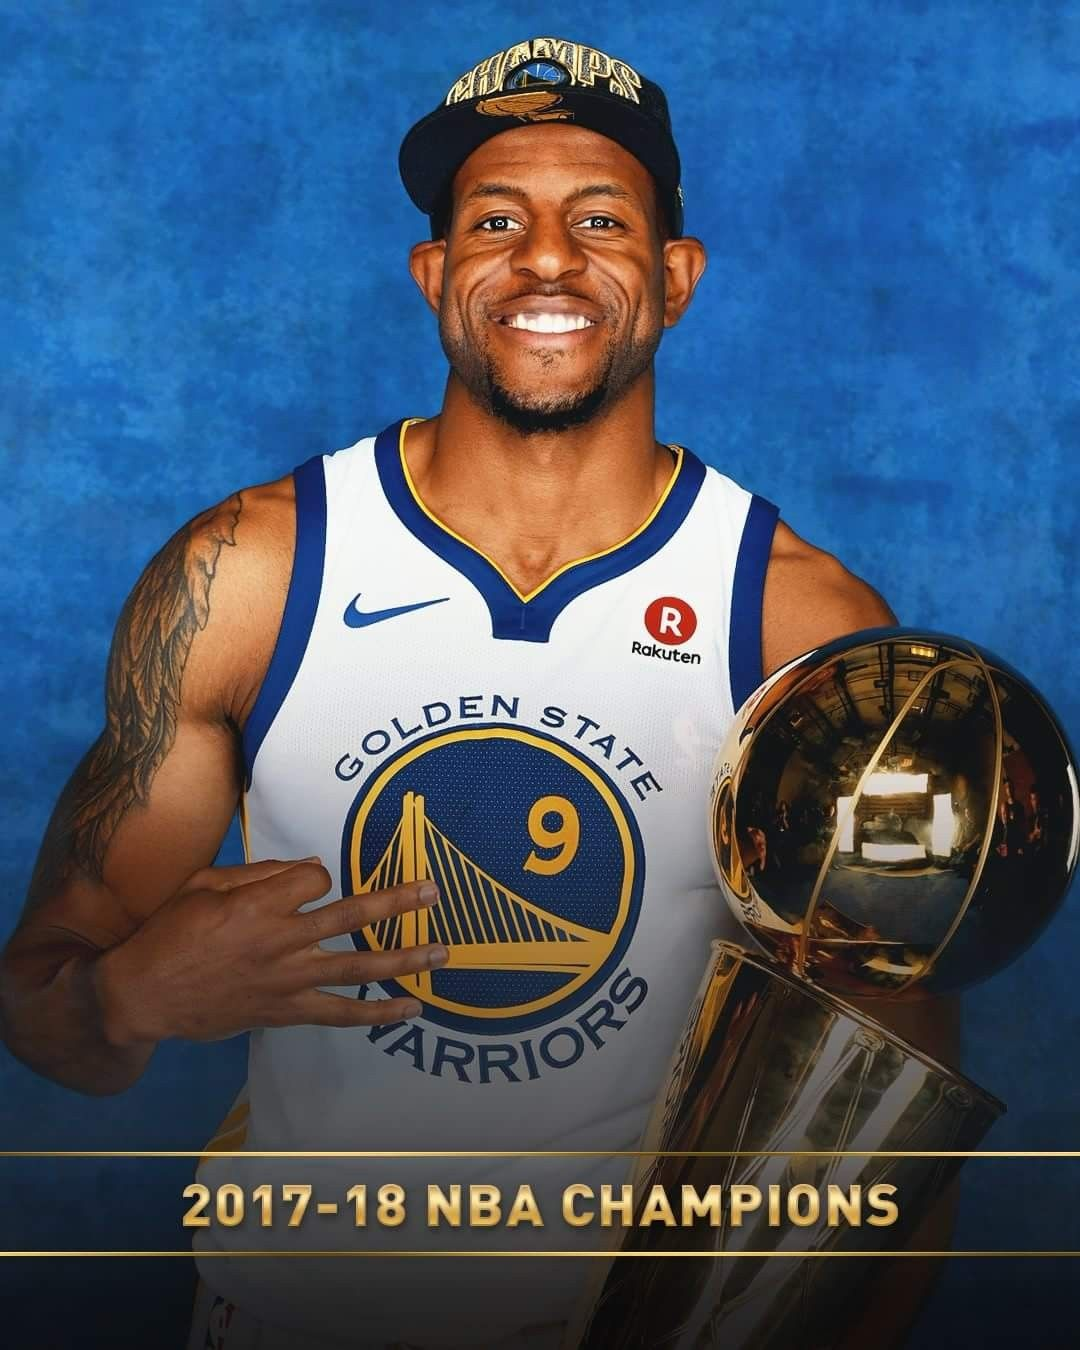 Andre 9 2018 nba champions, Nba champions, Golden state